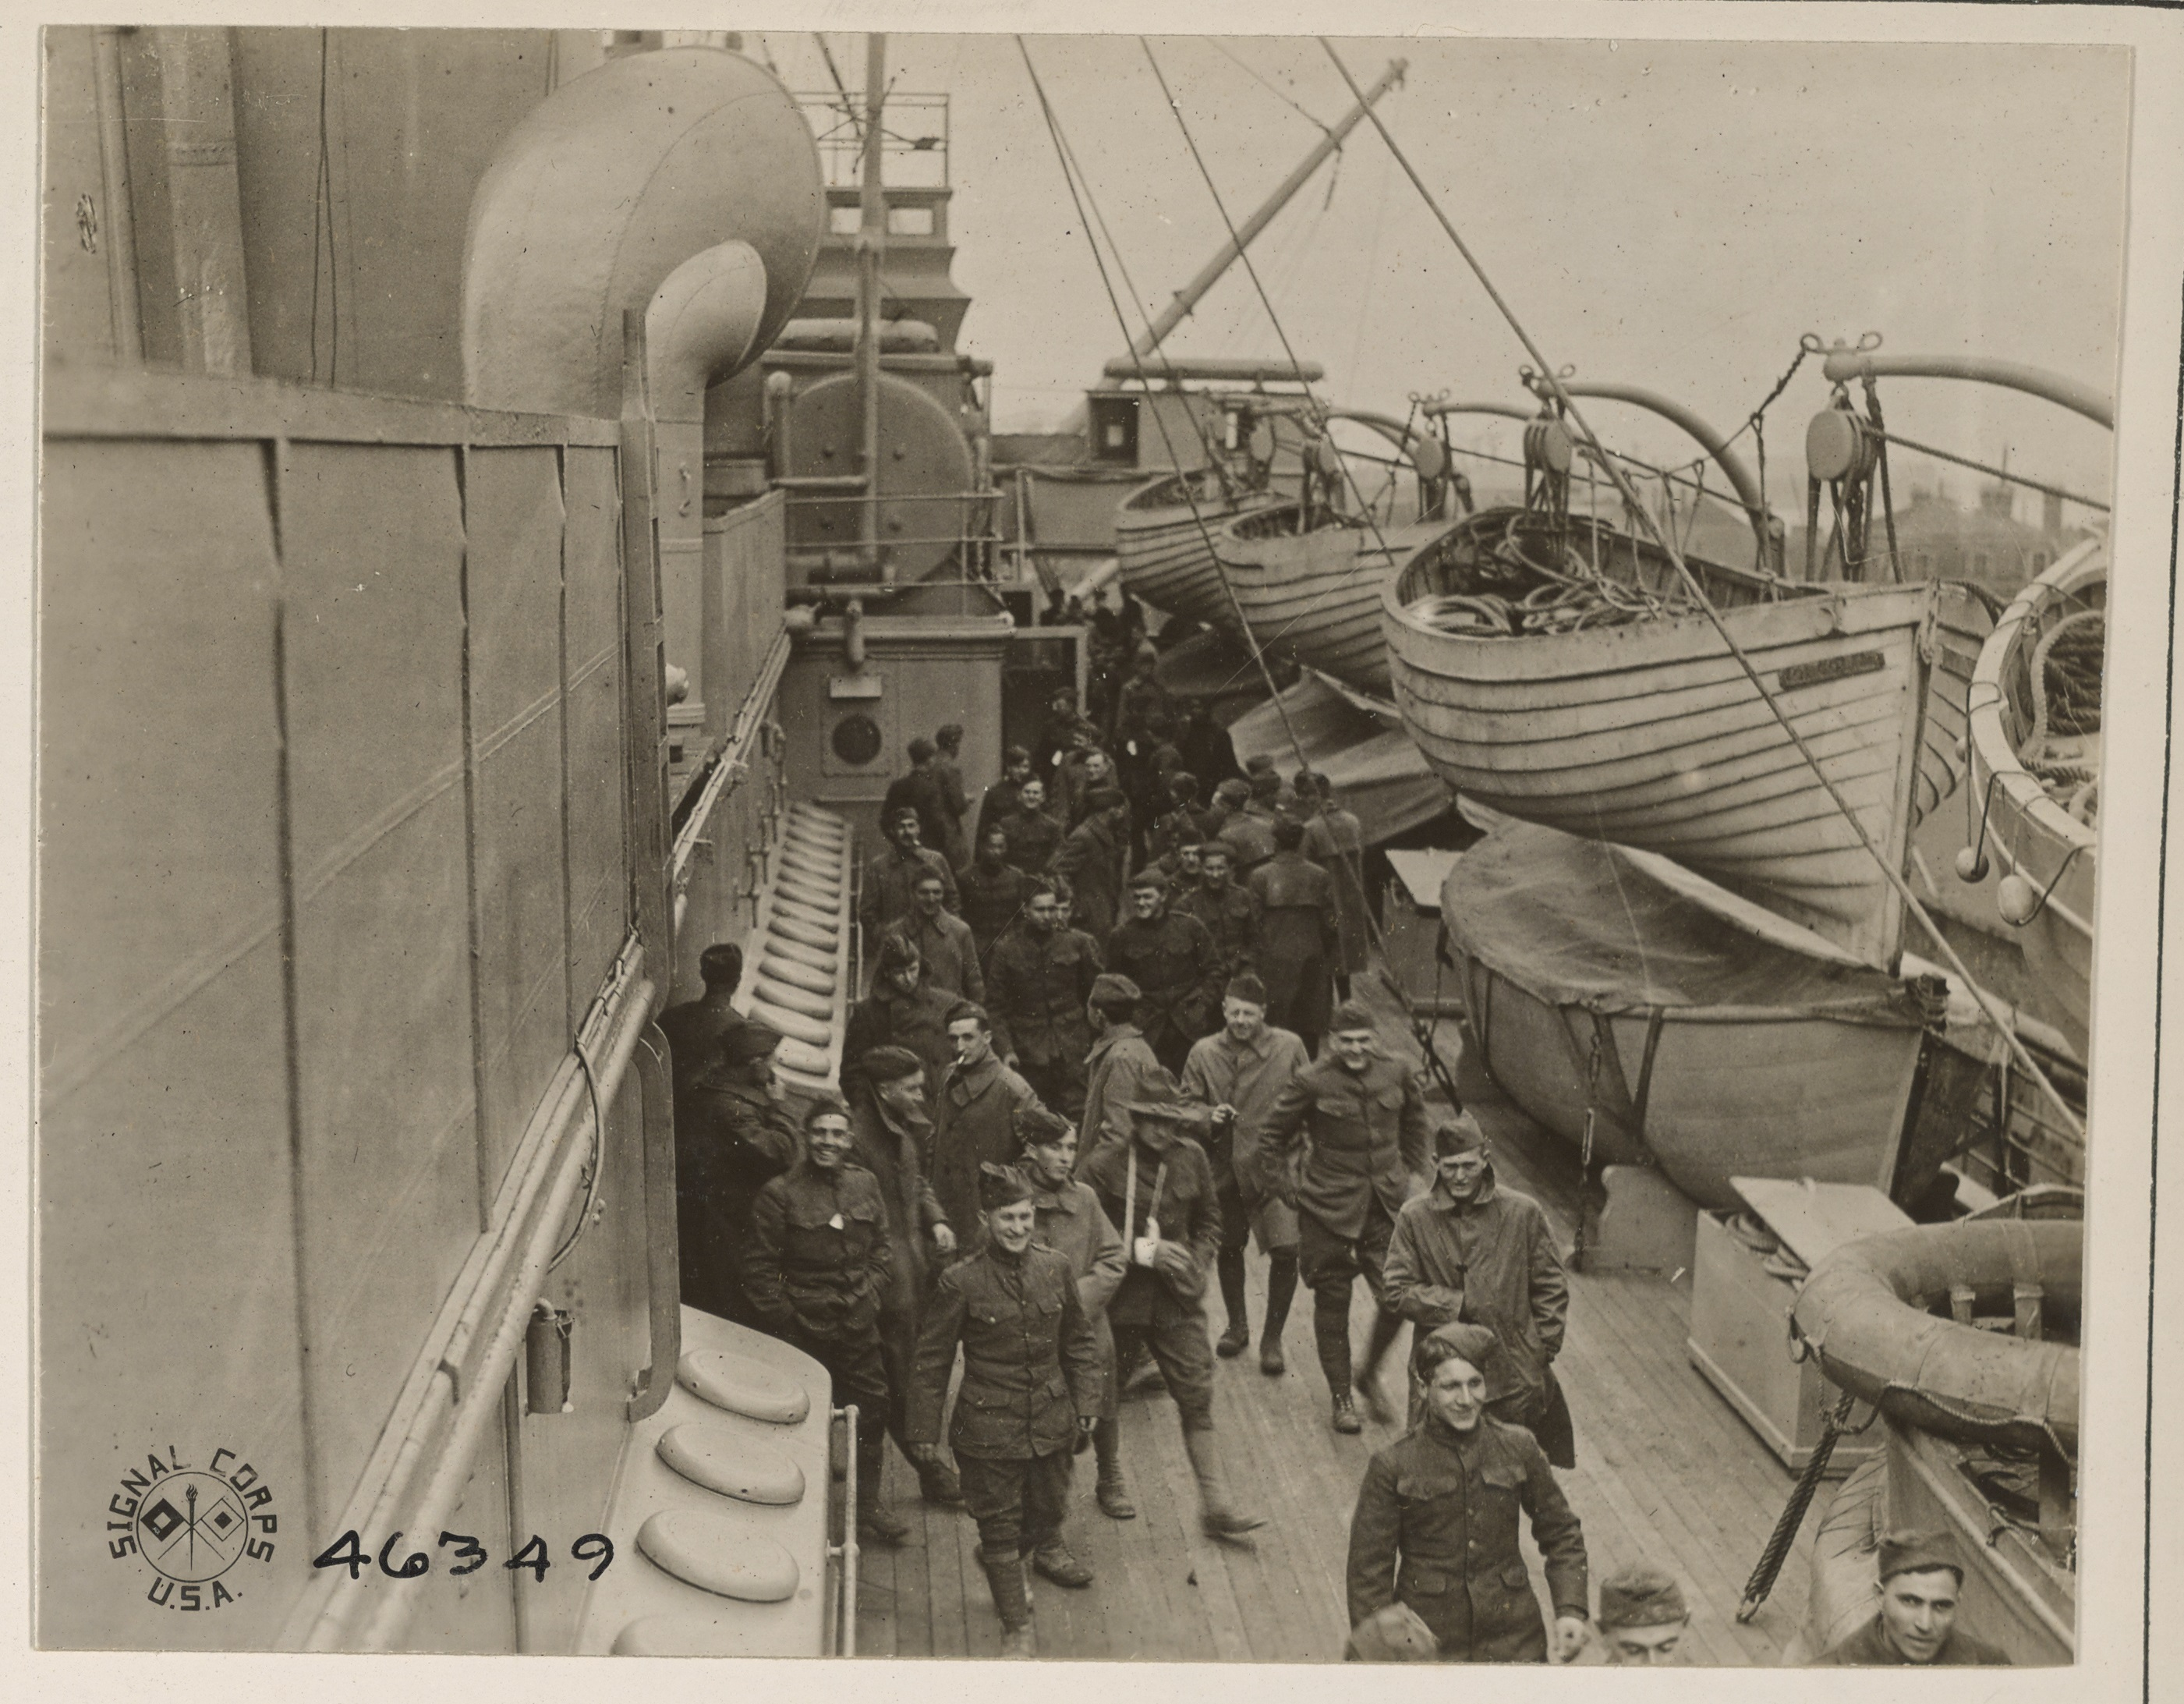 black and white photo of soldiers standing on a ship's dock